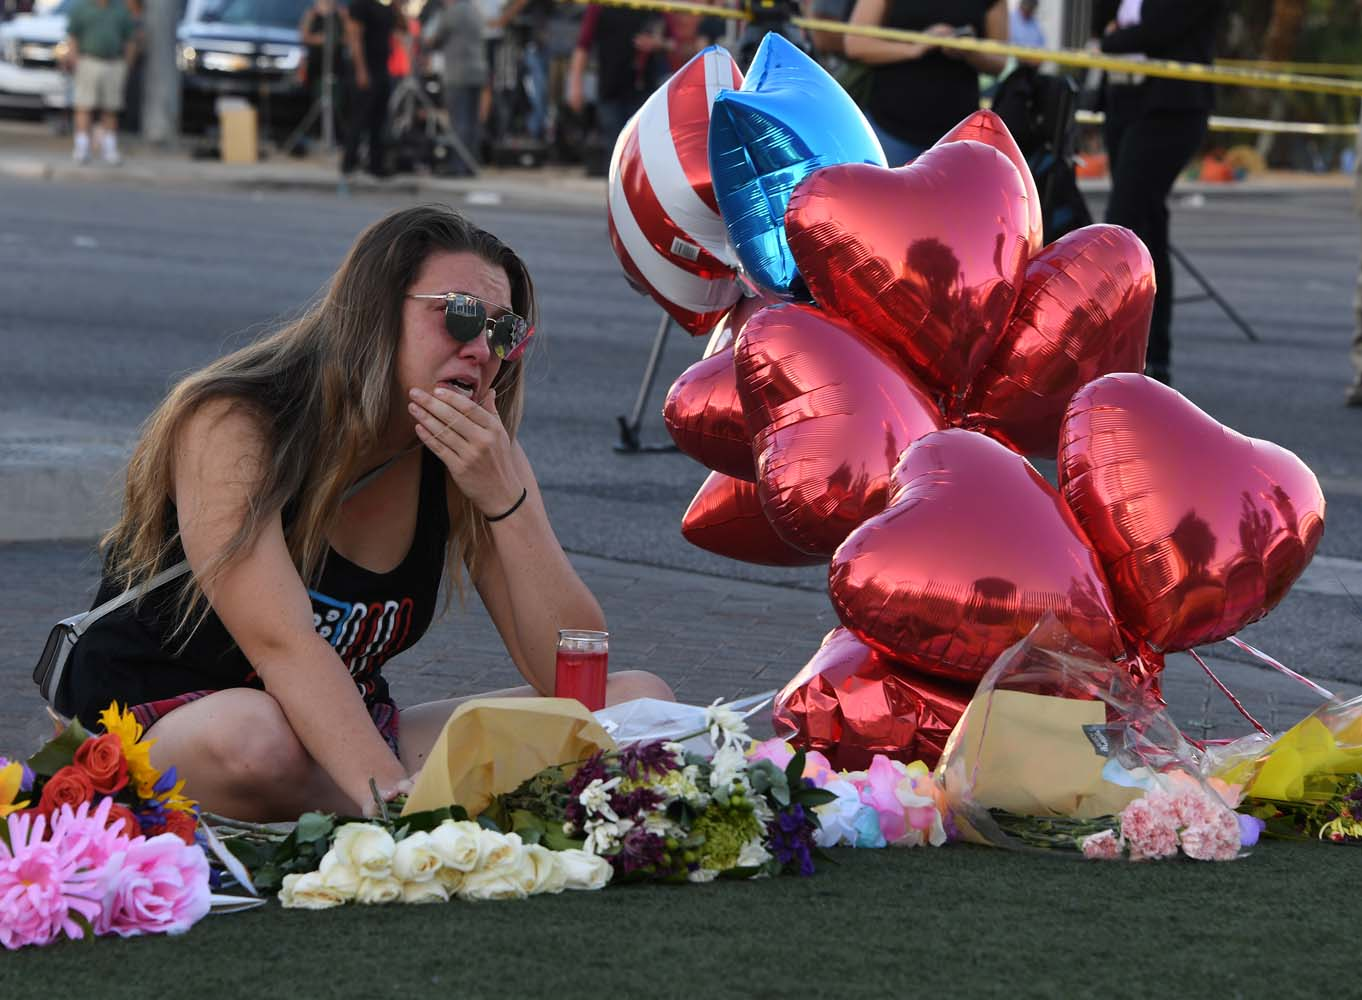 Destiny Alvers who attended the Route 91 country music festival and helped rescue her friend who was shot, reacts at a makeshift memorial on the Las Vegas Strip in Las Vegas, Nevada on October 3, 2017, after a gunman killed 59 people and wounded more than 500 others when he opened fire from a hotel window on a country music festival. Police said the gunman, a 64-year-old local resident named as Stephen Paddock, had been killed after a SWAT team responded to reports of multiple gunfire from the 32nd floor of the Mandalay Bay, a hotel-casino next to the concert venue. / AFP PHOTO / Mark RALSTON